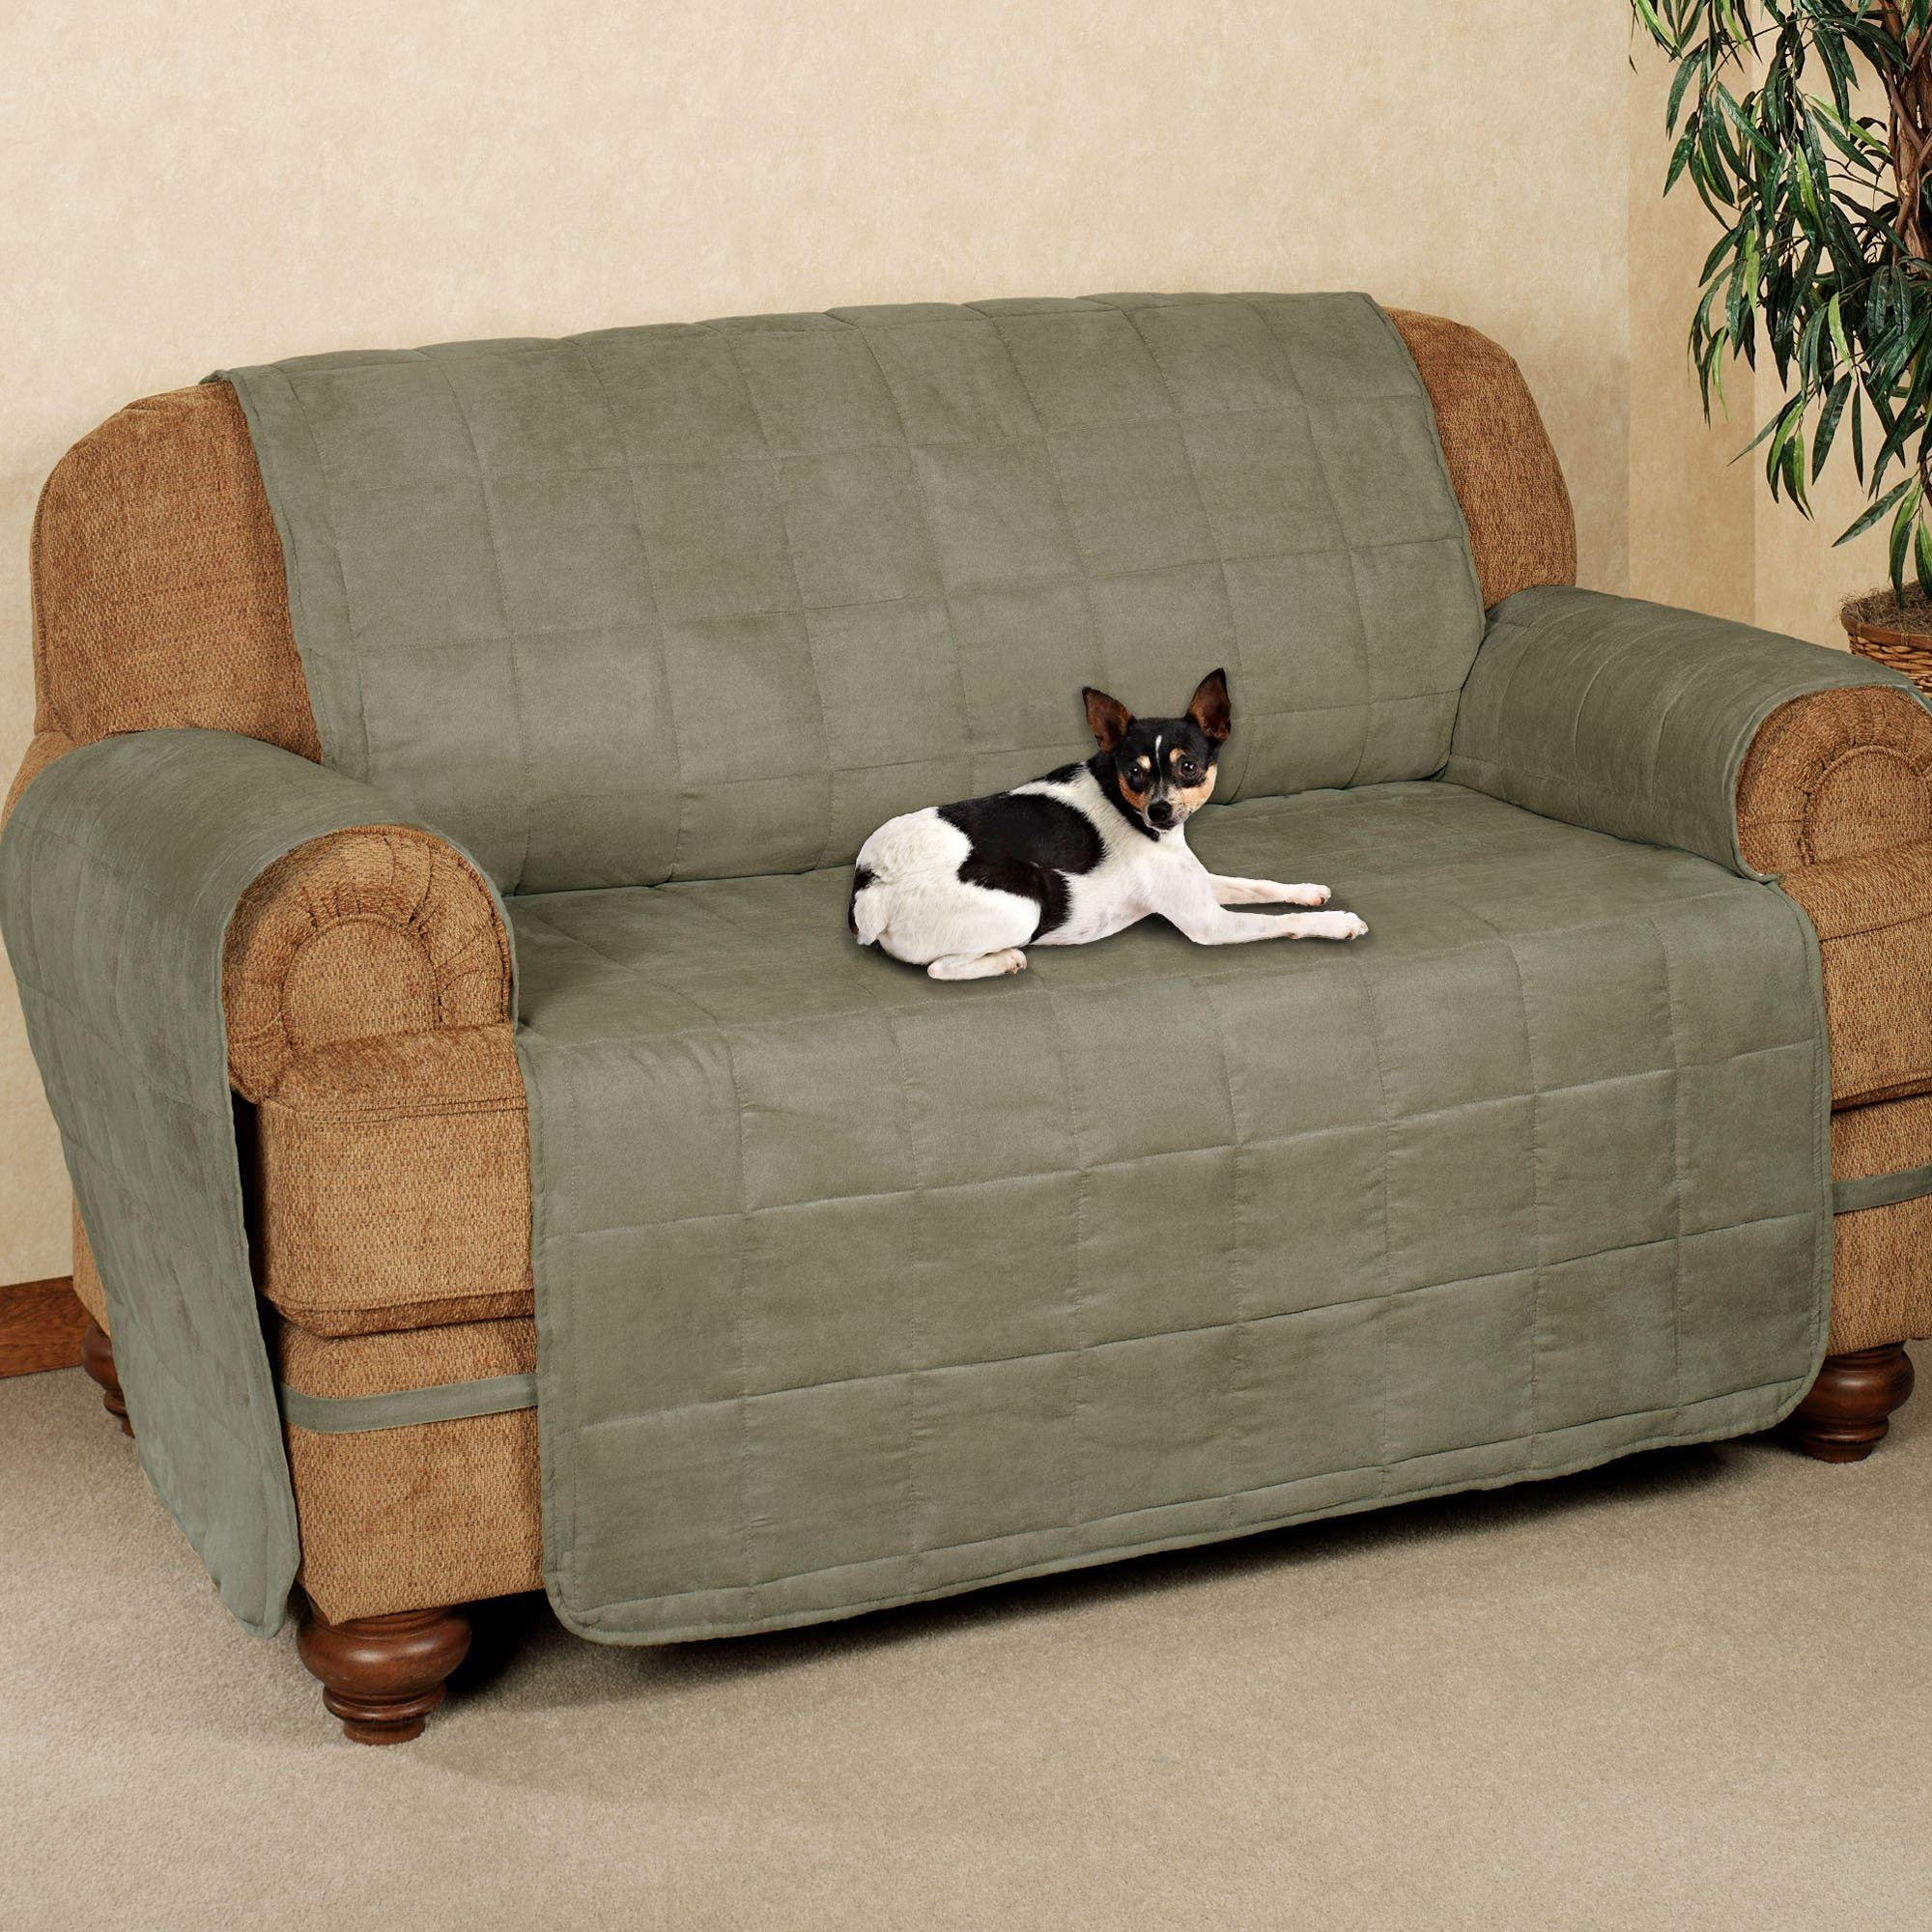 Ultimate Pet Furniture Protectors With Straps Inside Sofa Settee Covers (View 8 of 22)